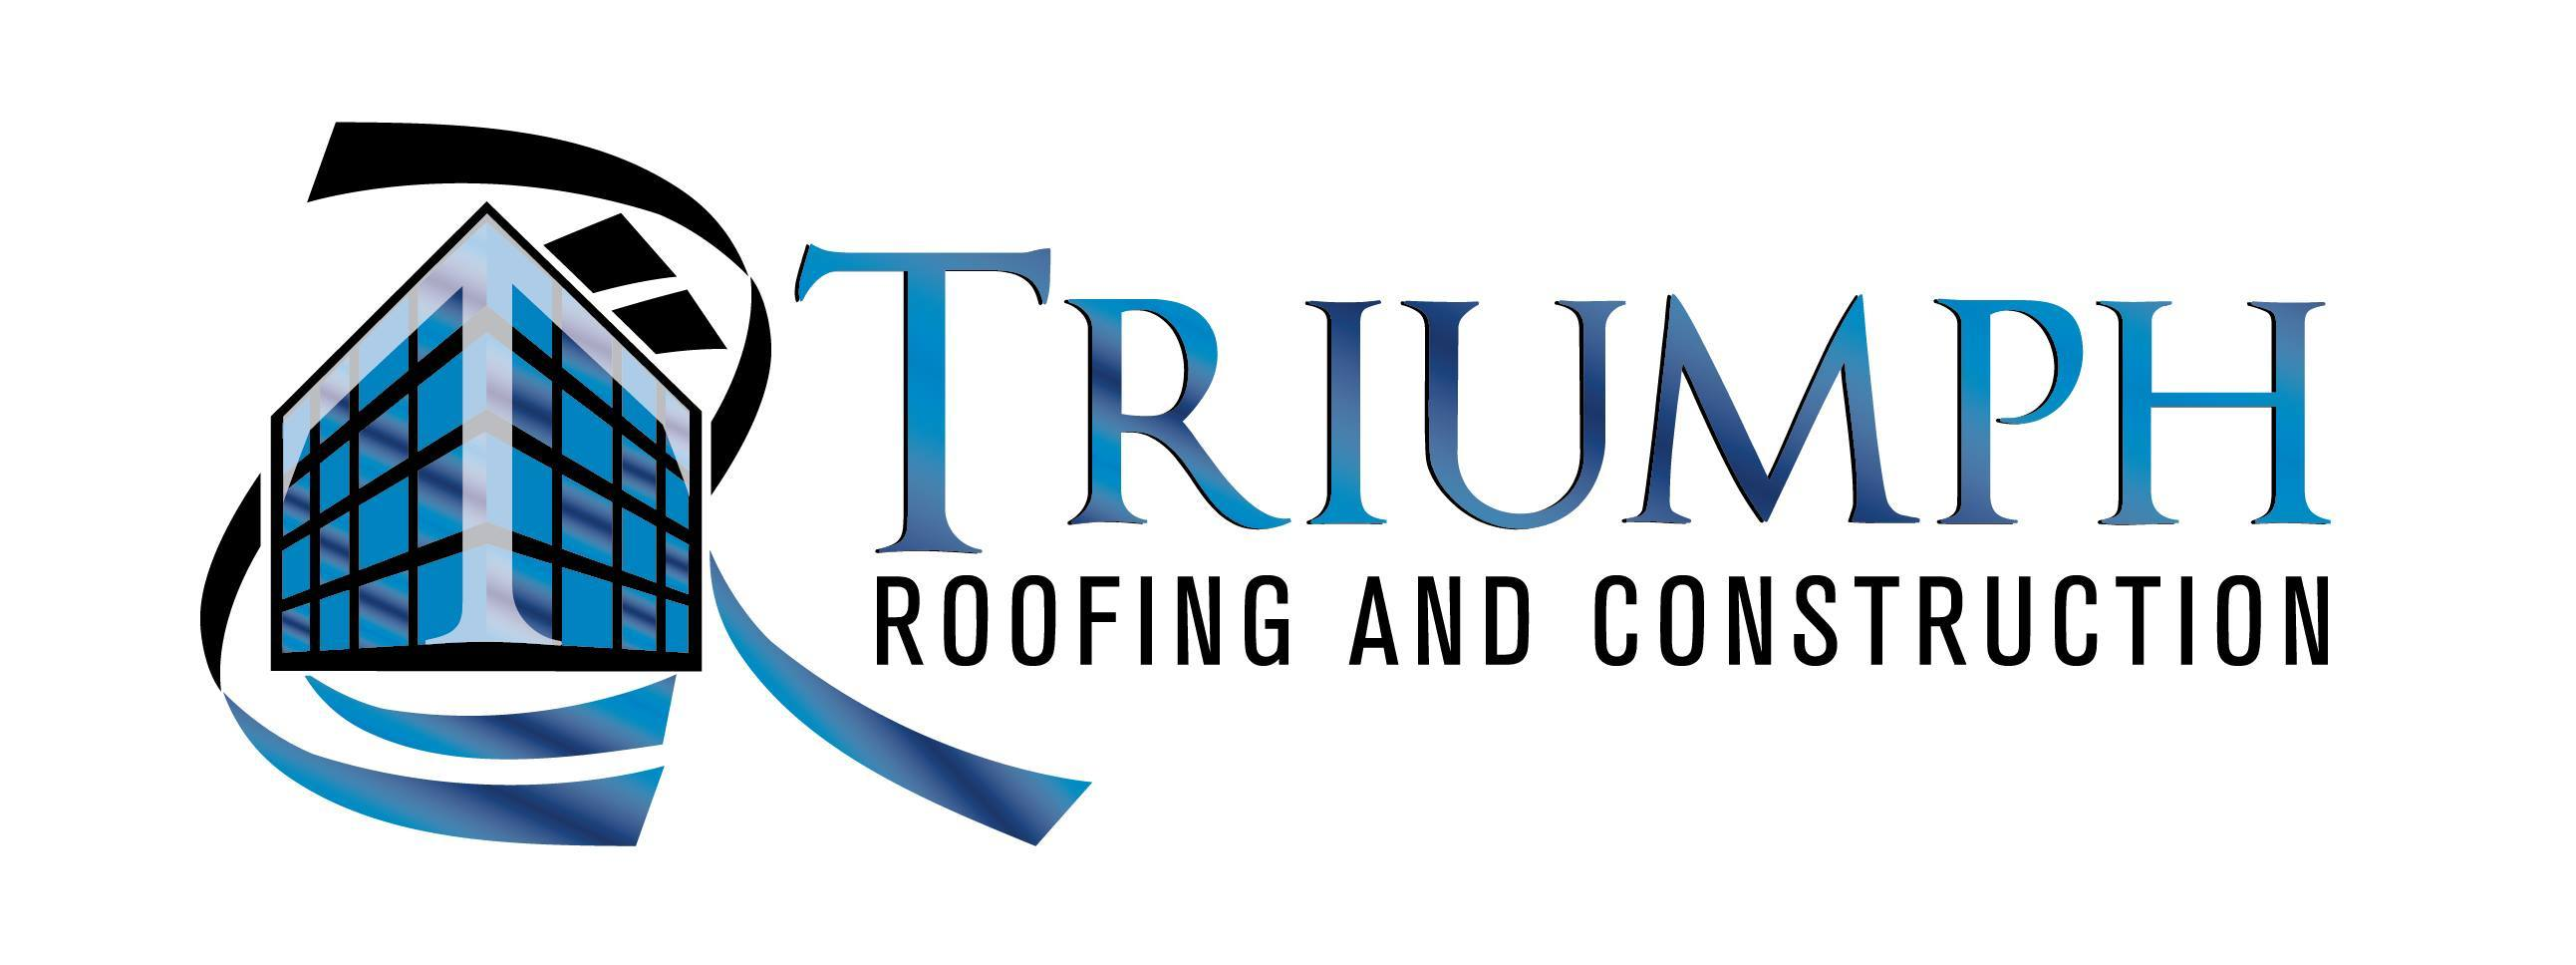 3 Roof Maintenance Tips For Fall Triumph Roofing And